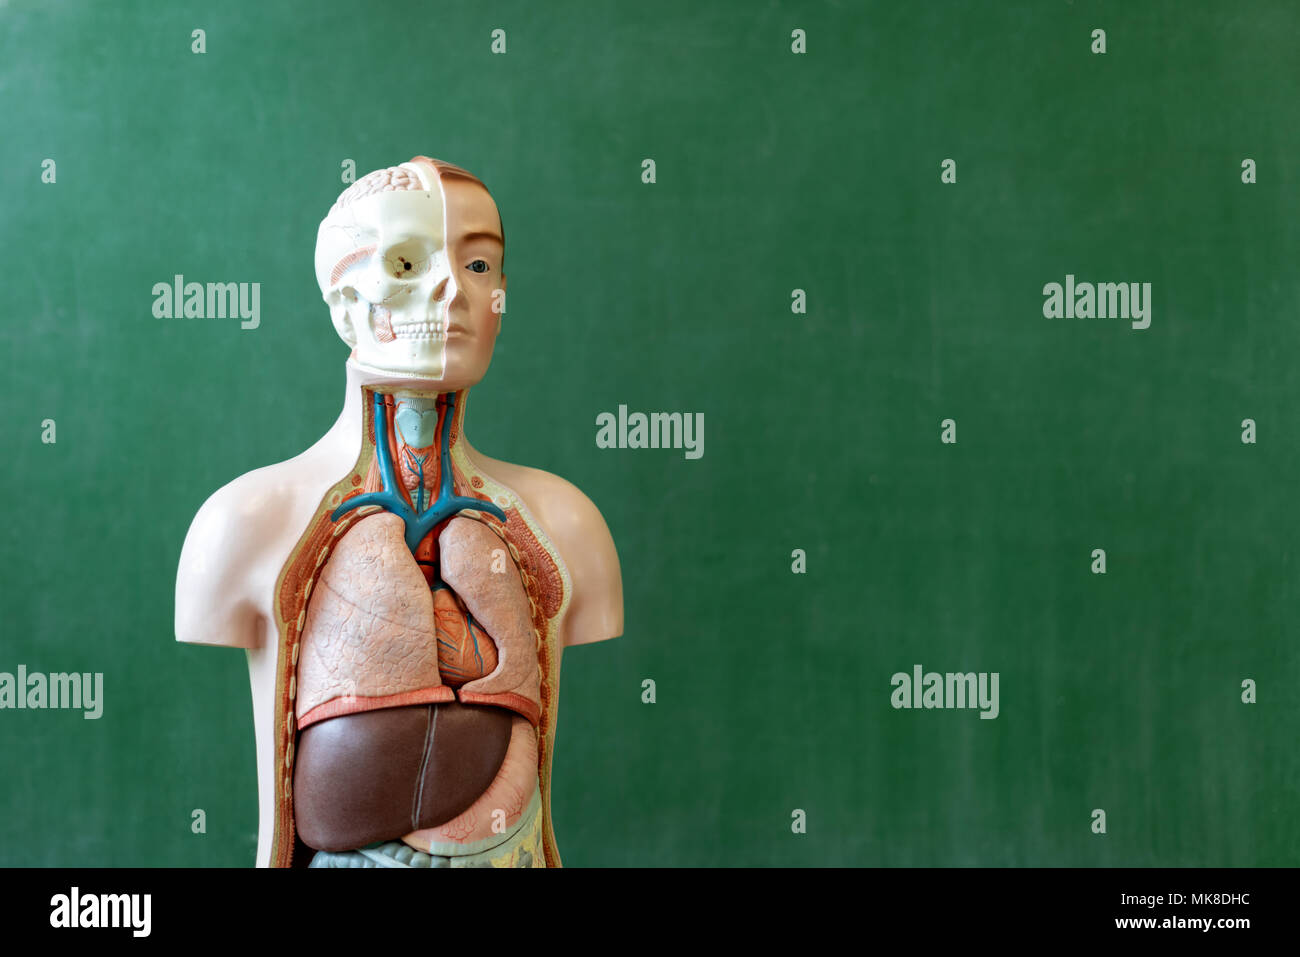 Artificial human body model. Biology class. Anatomy teaching aid. Education concept. - Stock Image